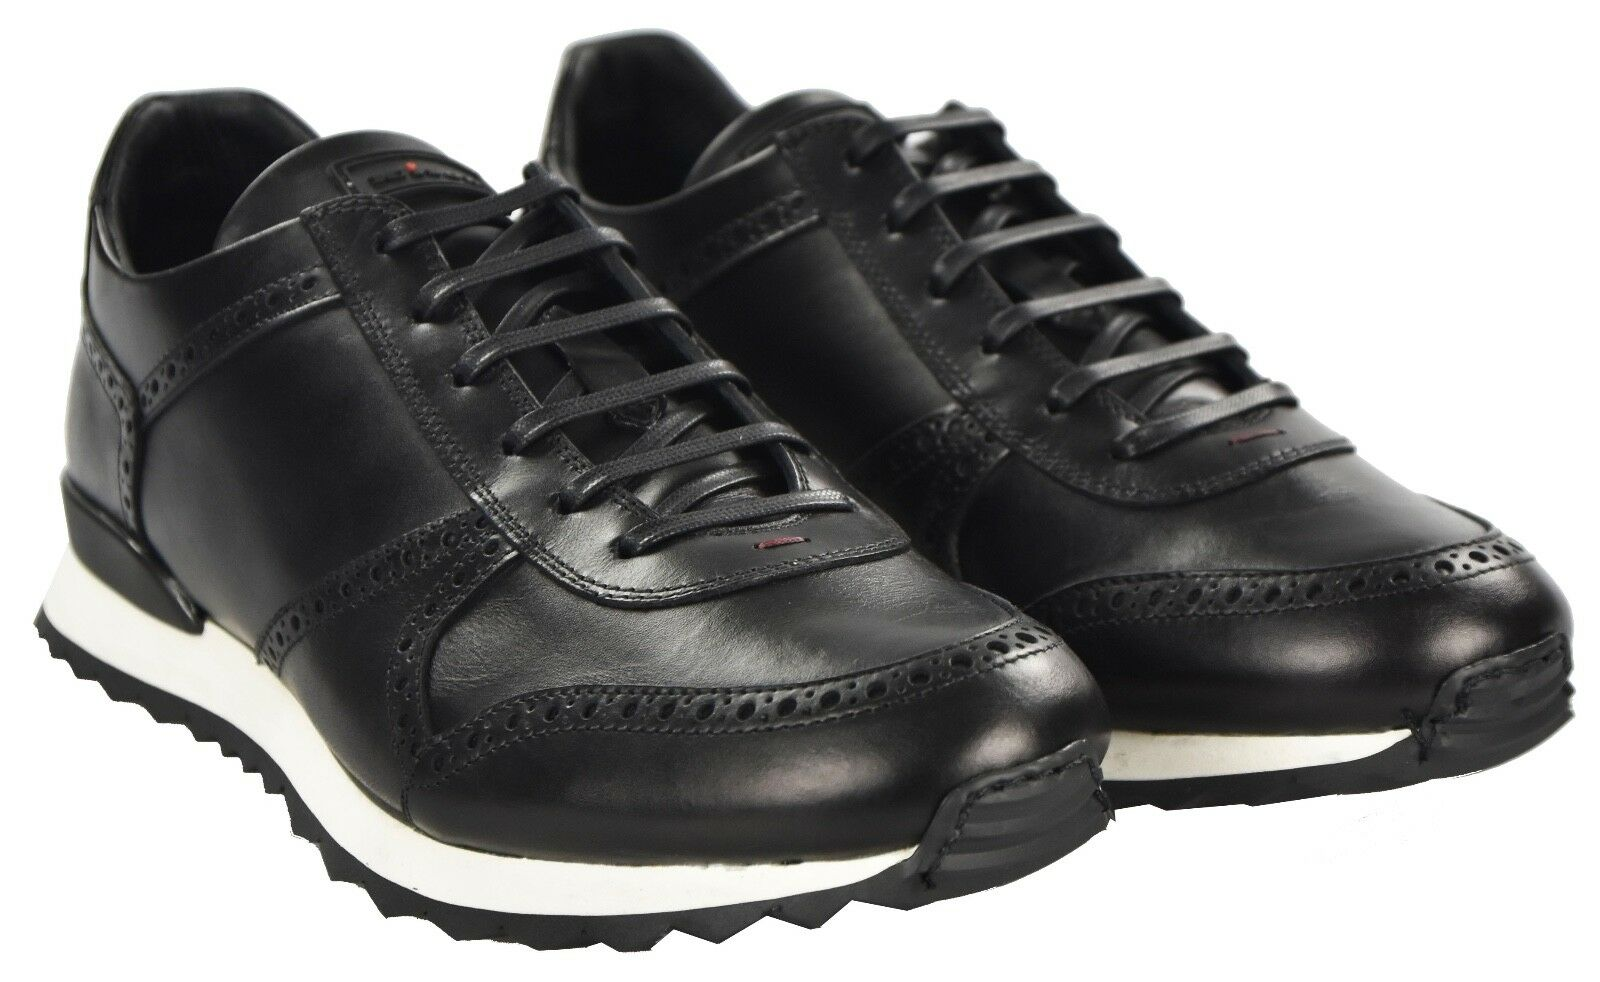 741736fb61 KITON SHOES SNEAKERS 100% LEATHER SIZE 11 US 44 KSCW4 NEW  nyhjrv7209-Athletic Shoes